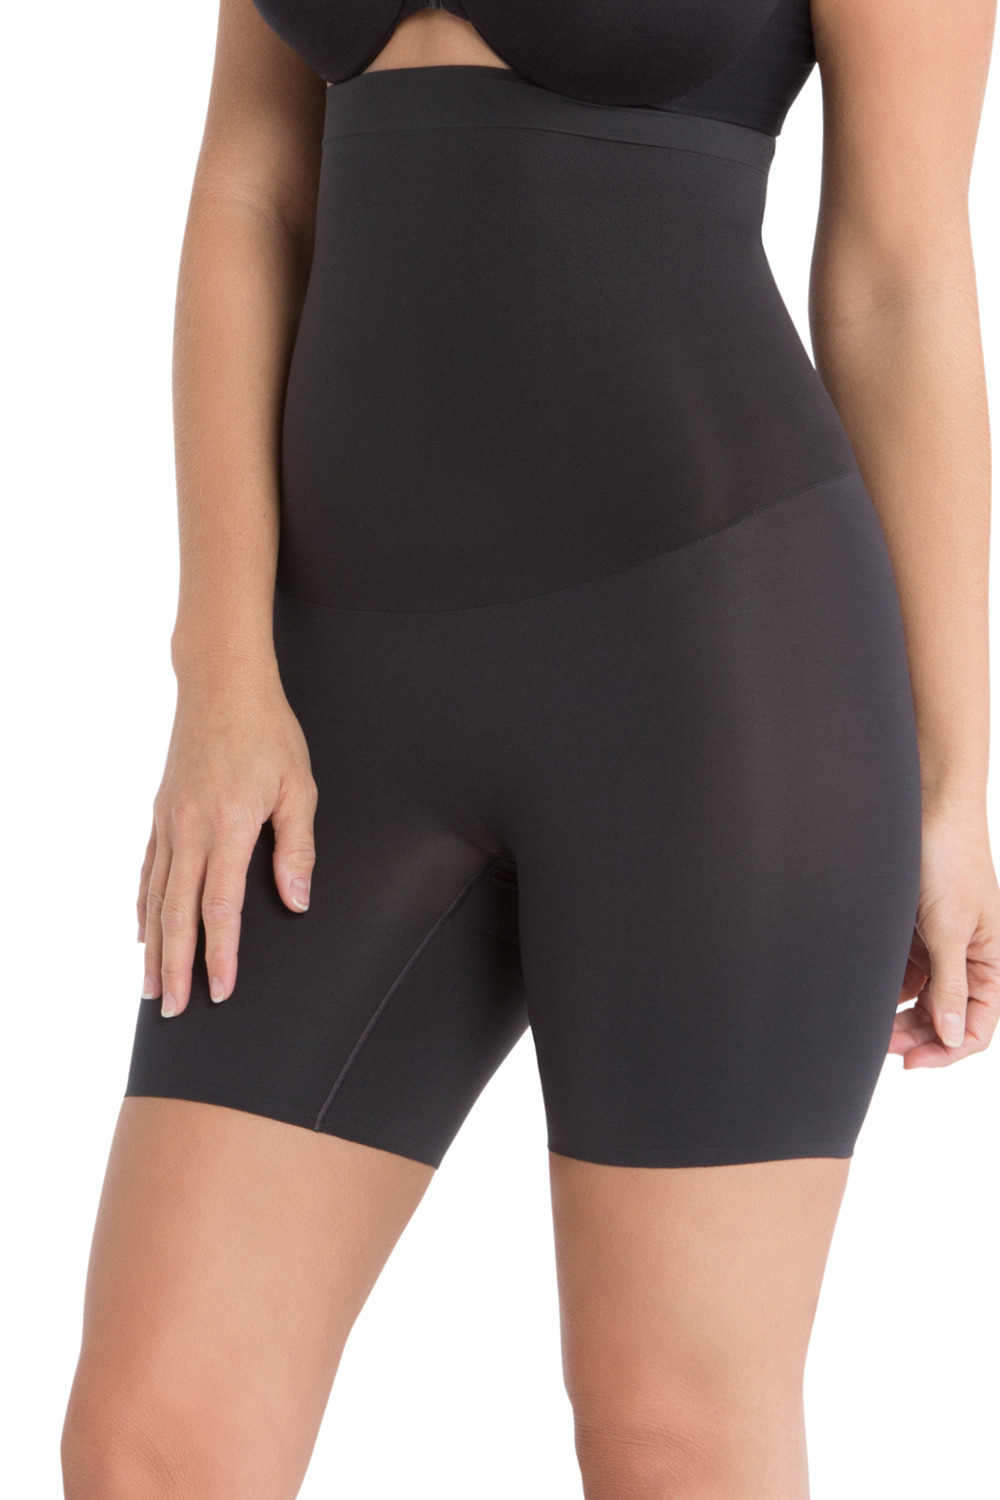 a07d0d2a66fb Spanx Shape My Day Shaping Shorts XS-XL